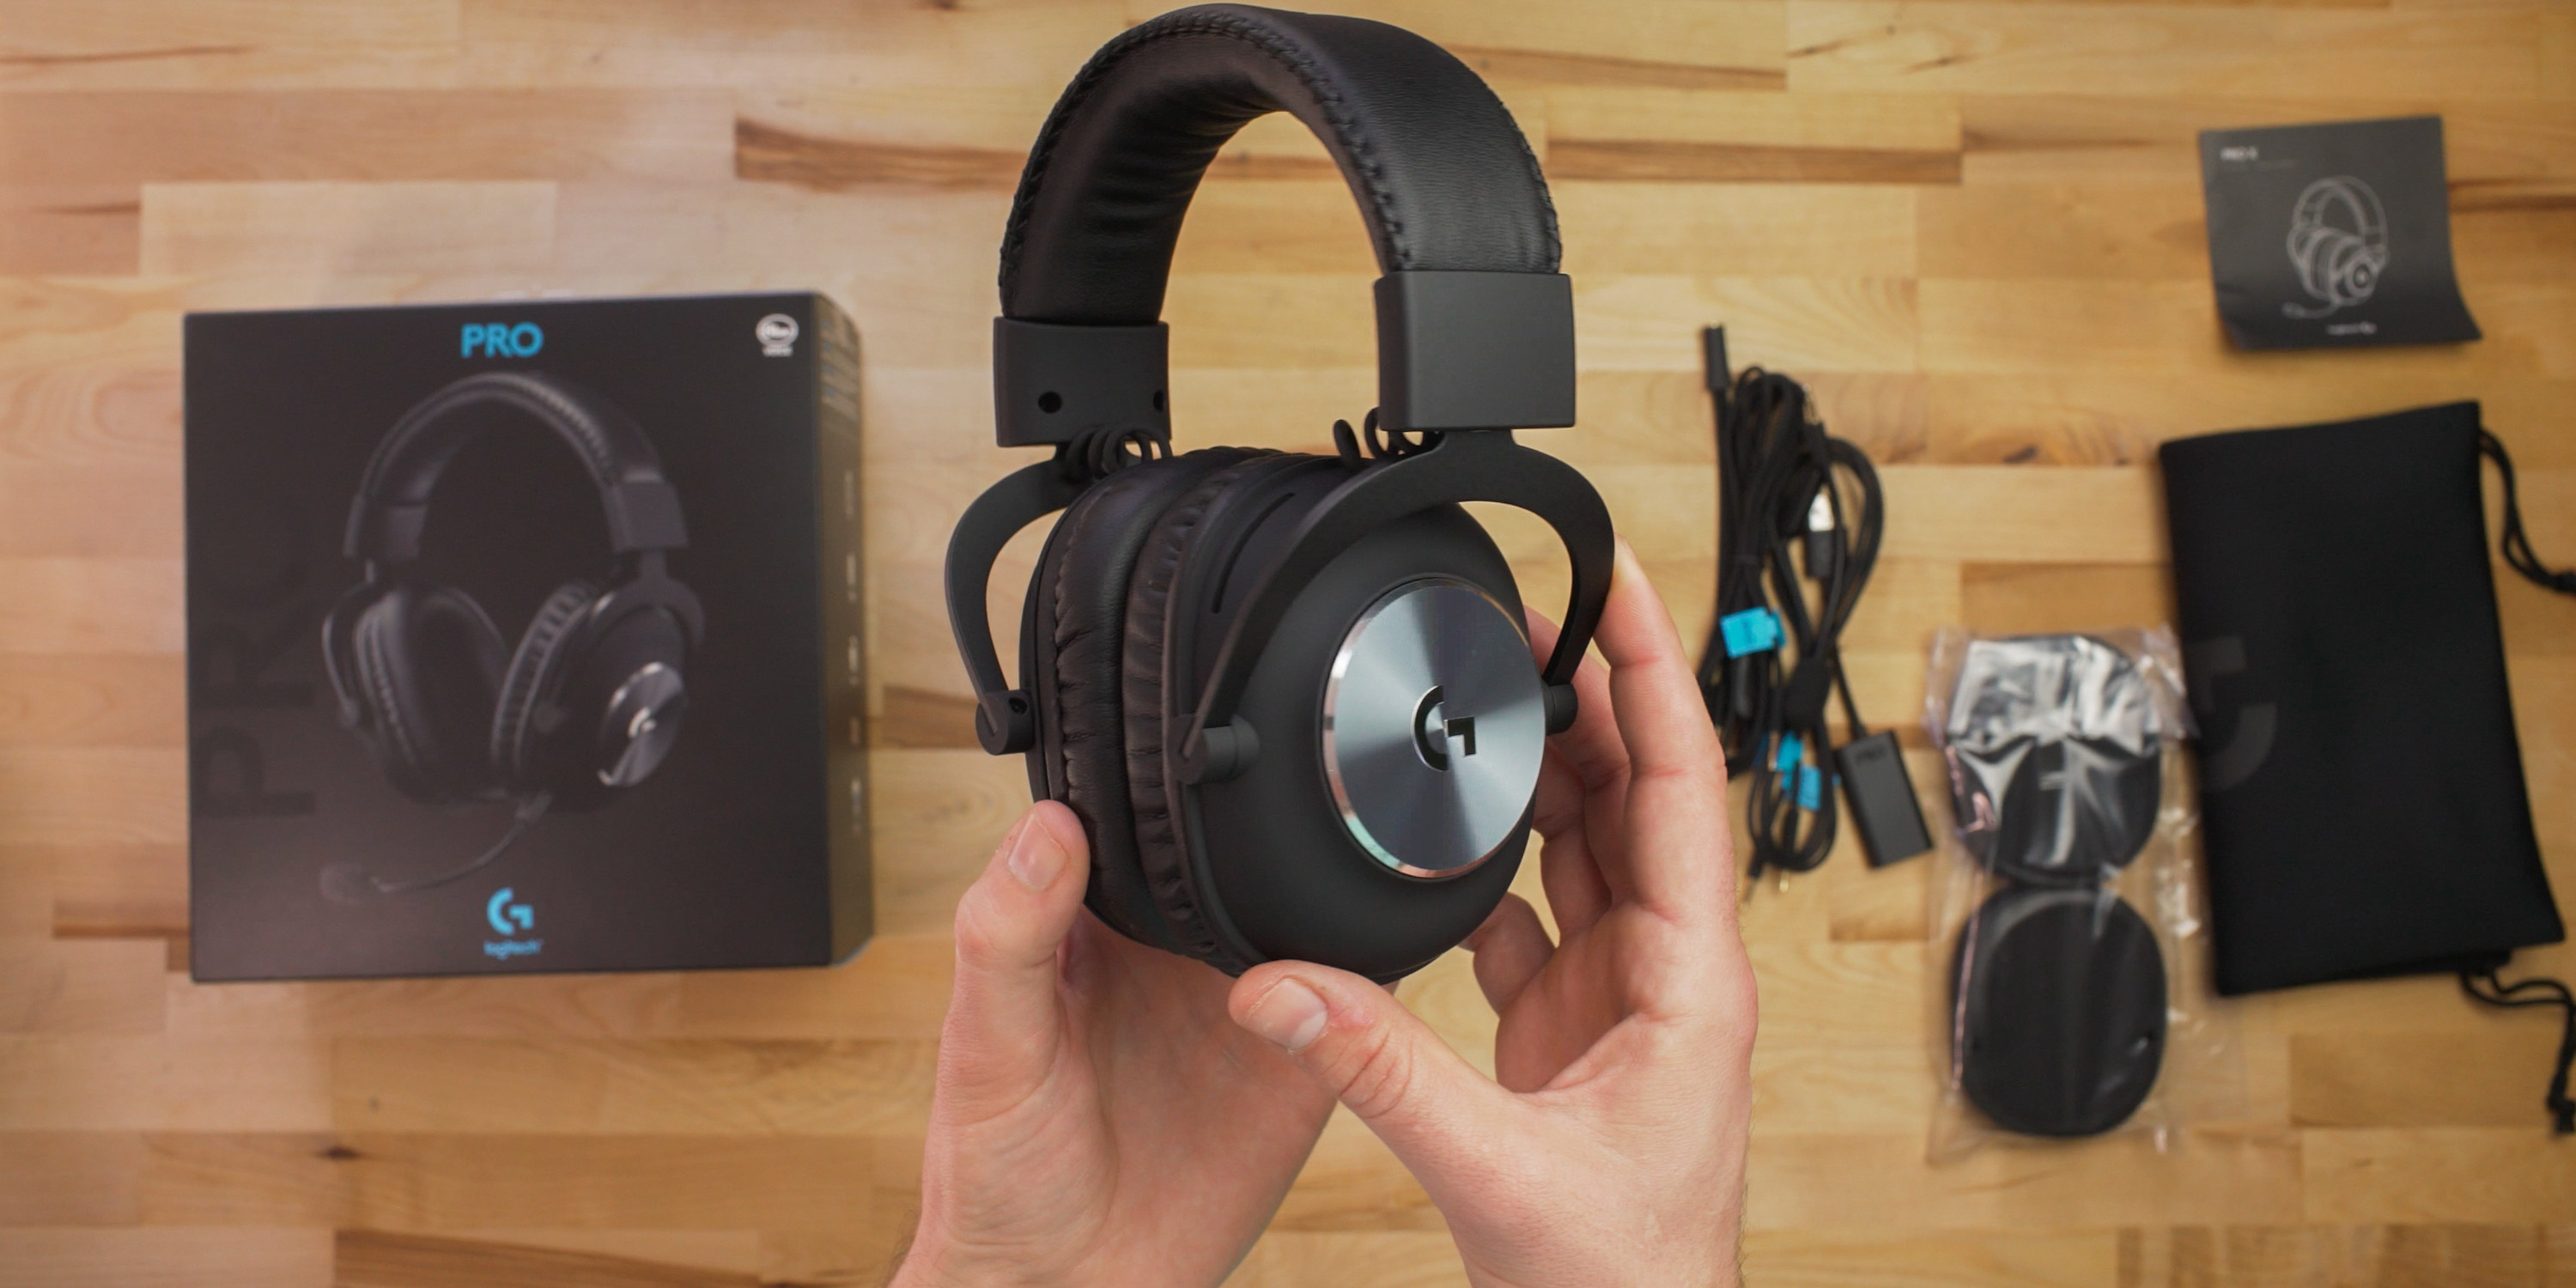 Unboxing the Logitech Pro X Headset